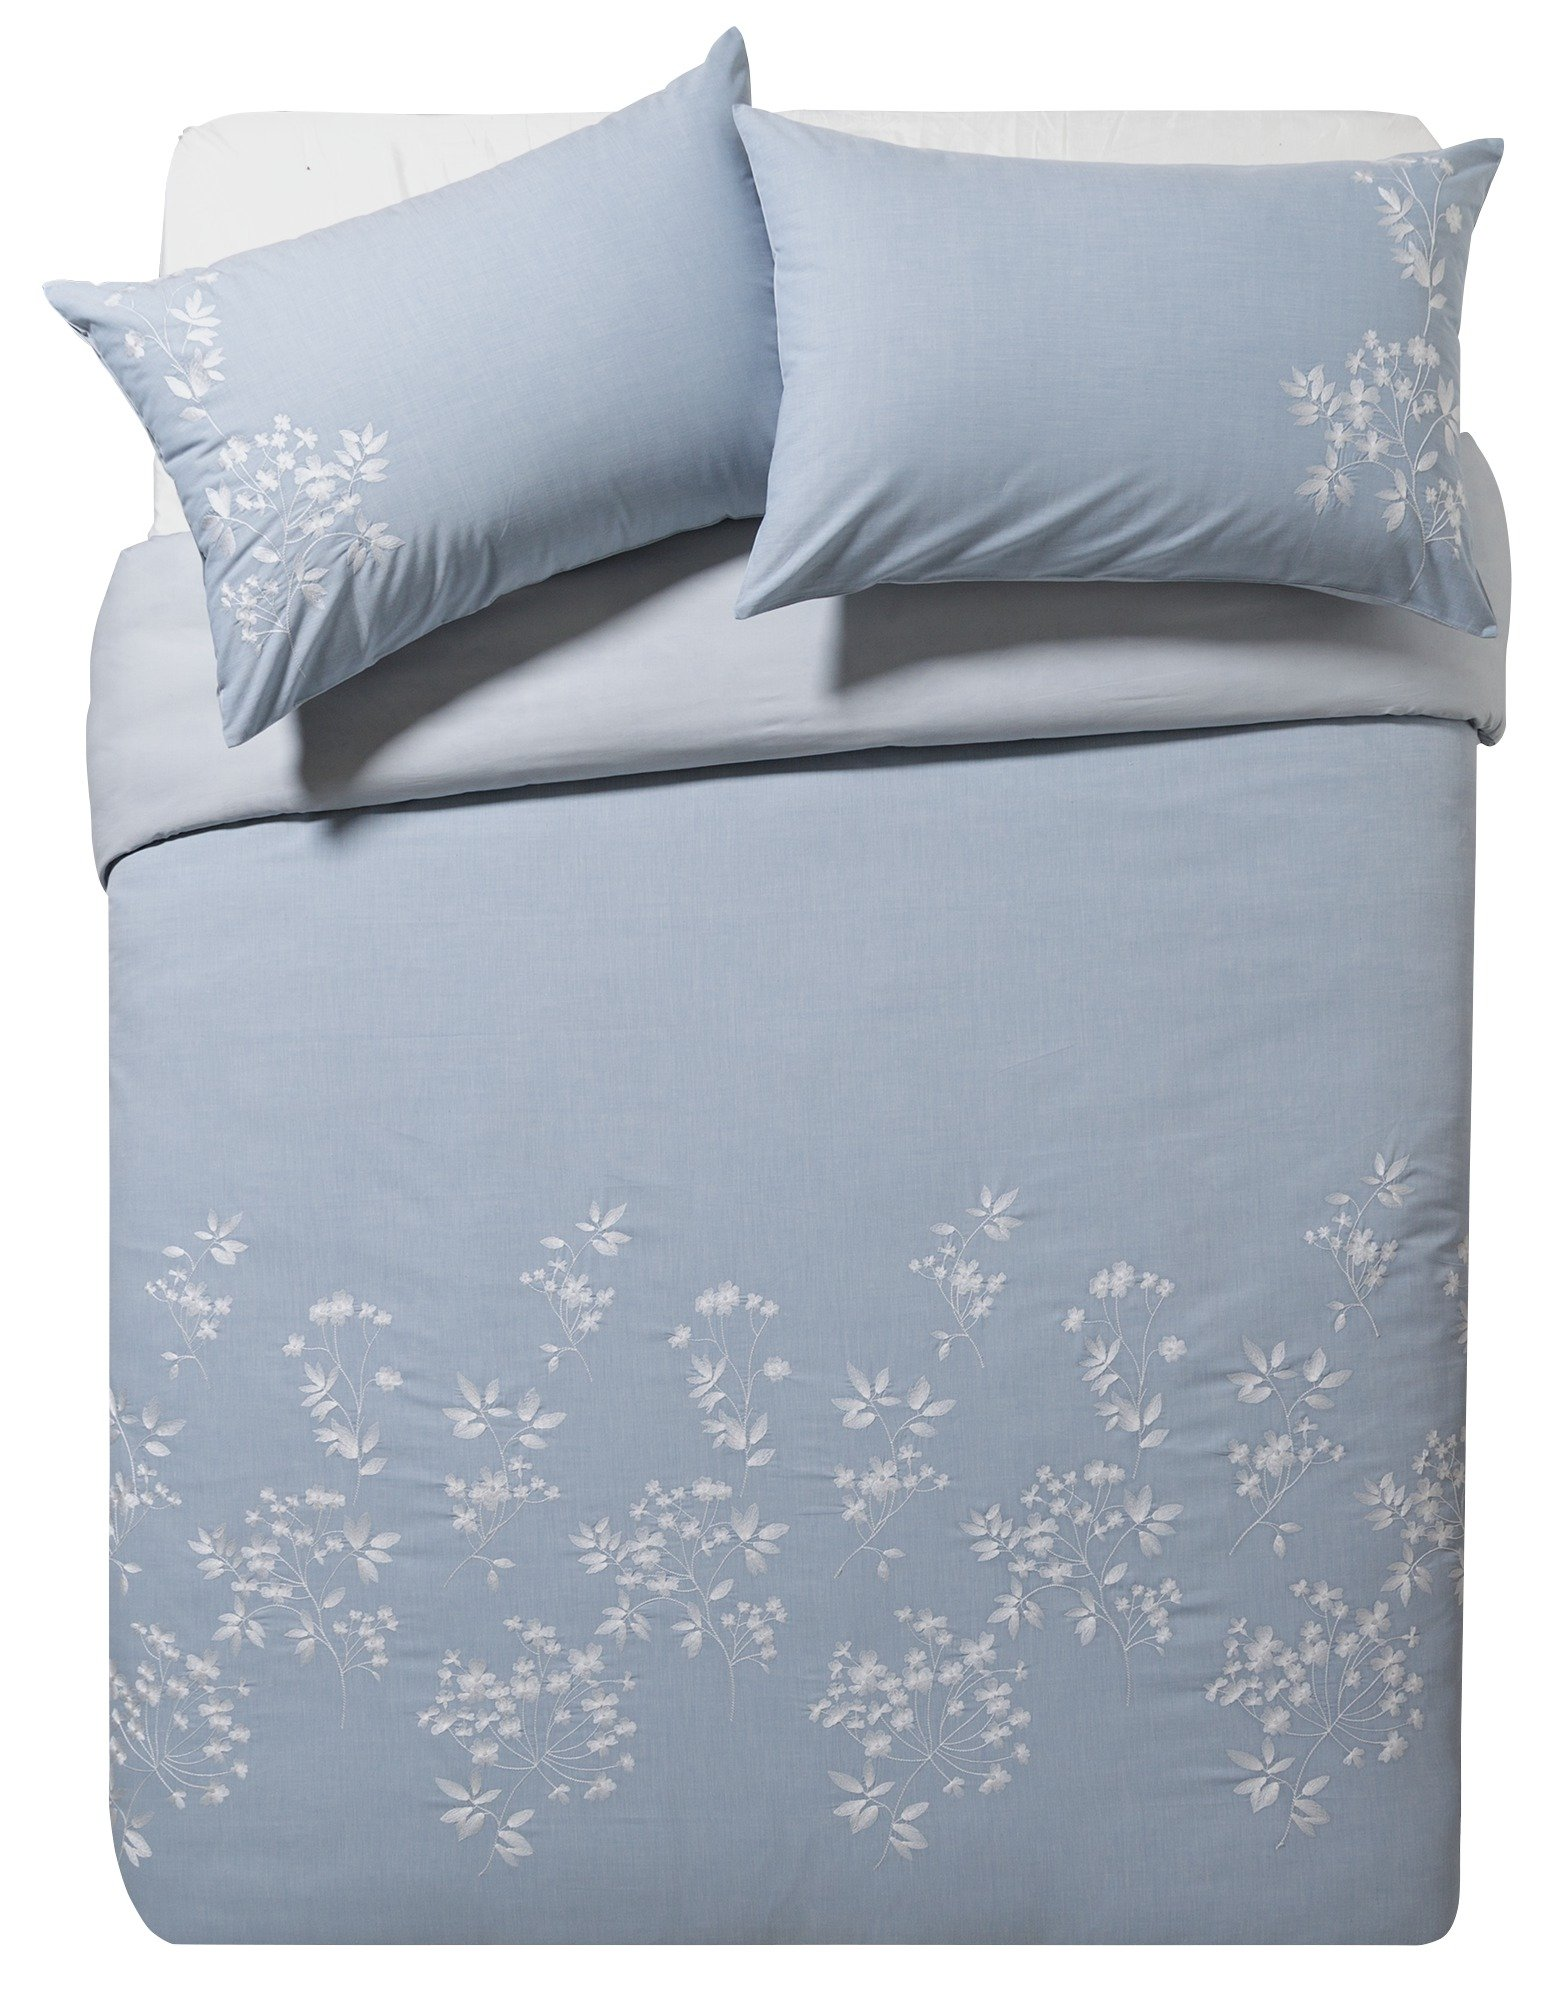 Heart of House Virginia Embroidered Bedding Set - Superking.